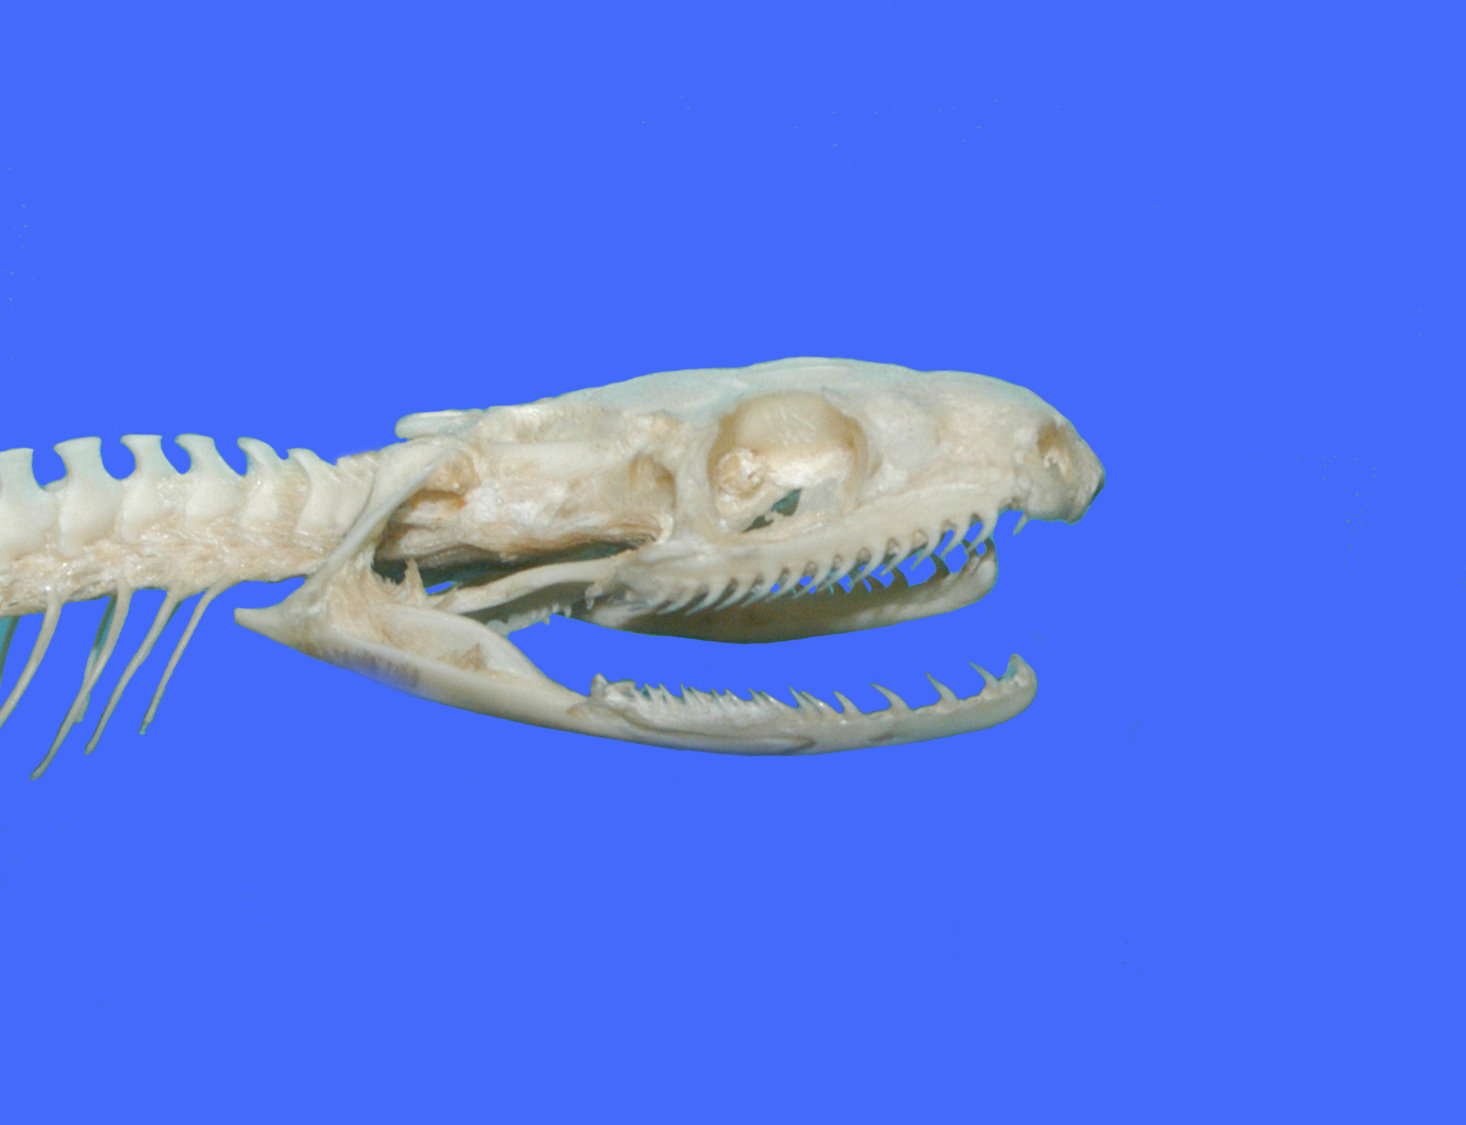 Eastern Ratsnake Gallery Images And Information Snake Skeleton Diagram Skull